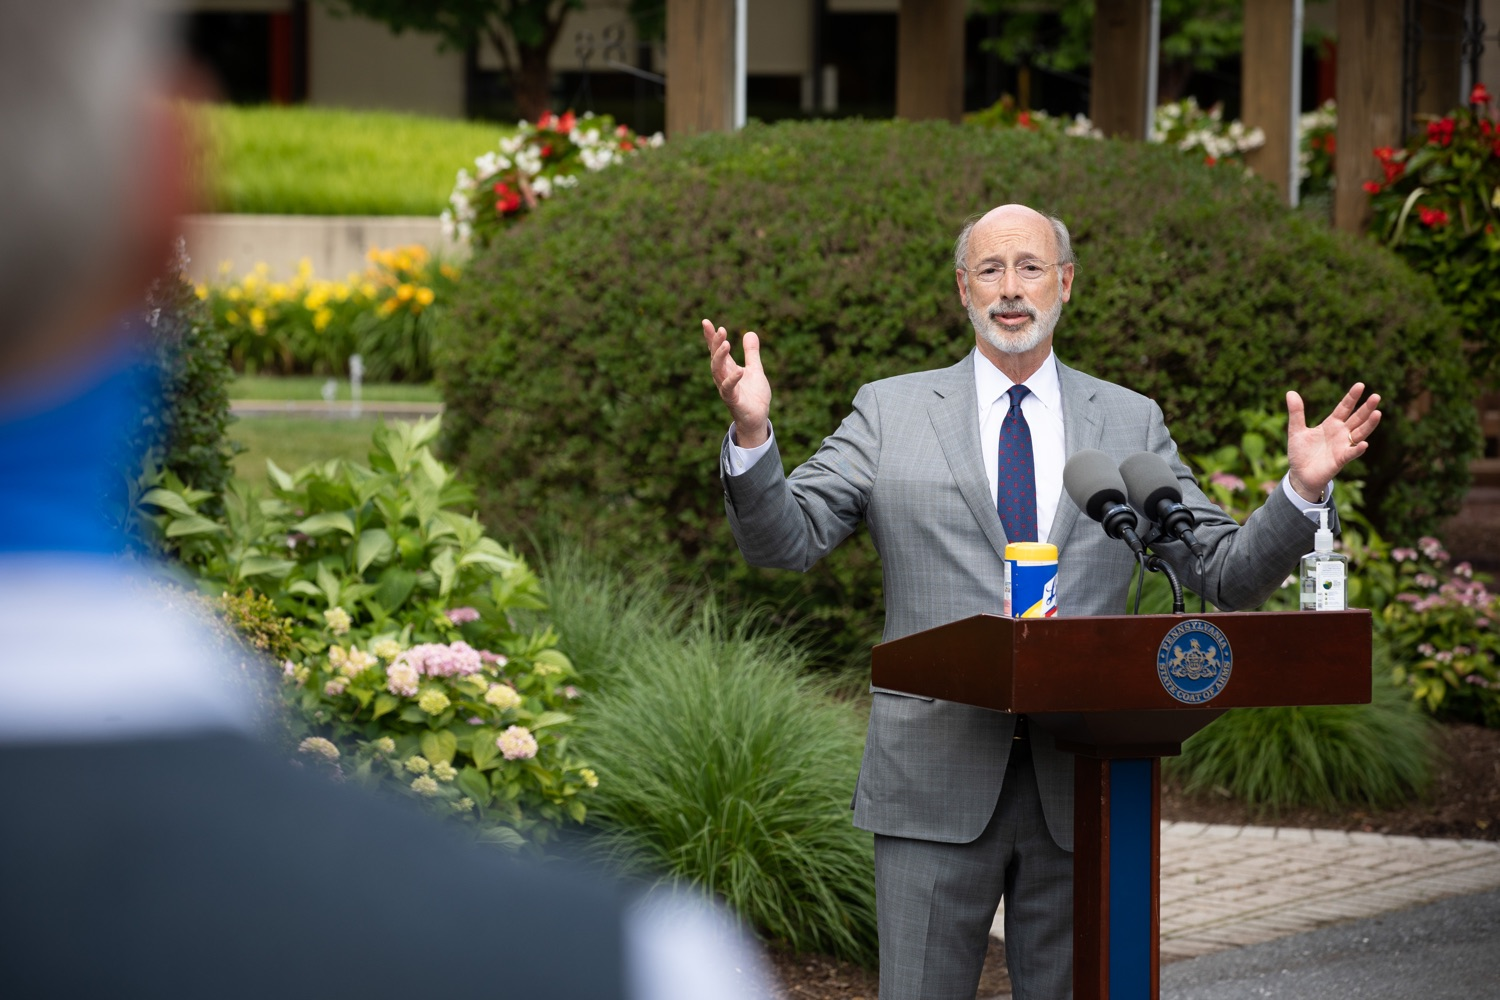 """<a href=""""https://filesource.wostreaming.net/commonwealthofpa/photo/18093_gov-healthcare_workers_dz_11.jpg"""" target=""""_blank"""">⇣Download Photo<br></a>Pennsylvania Governor Tom Wolf answering questions from the press during his visit to Milton S. Hershey Medical Center. As the commonwealth continues its measured, phased reopening and COVID-19 case counts continue to decline, Governor Tom Wolf visited Penn State Milton S. Hershey Medical Center today to thank staff and learn more about how the facility is handling the pandemic and preparing for a possible resurgence in the fall.  Harrisburg, PA  June 24, 2020"""